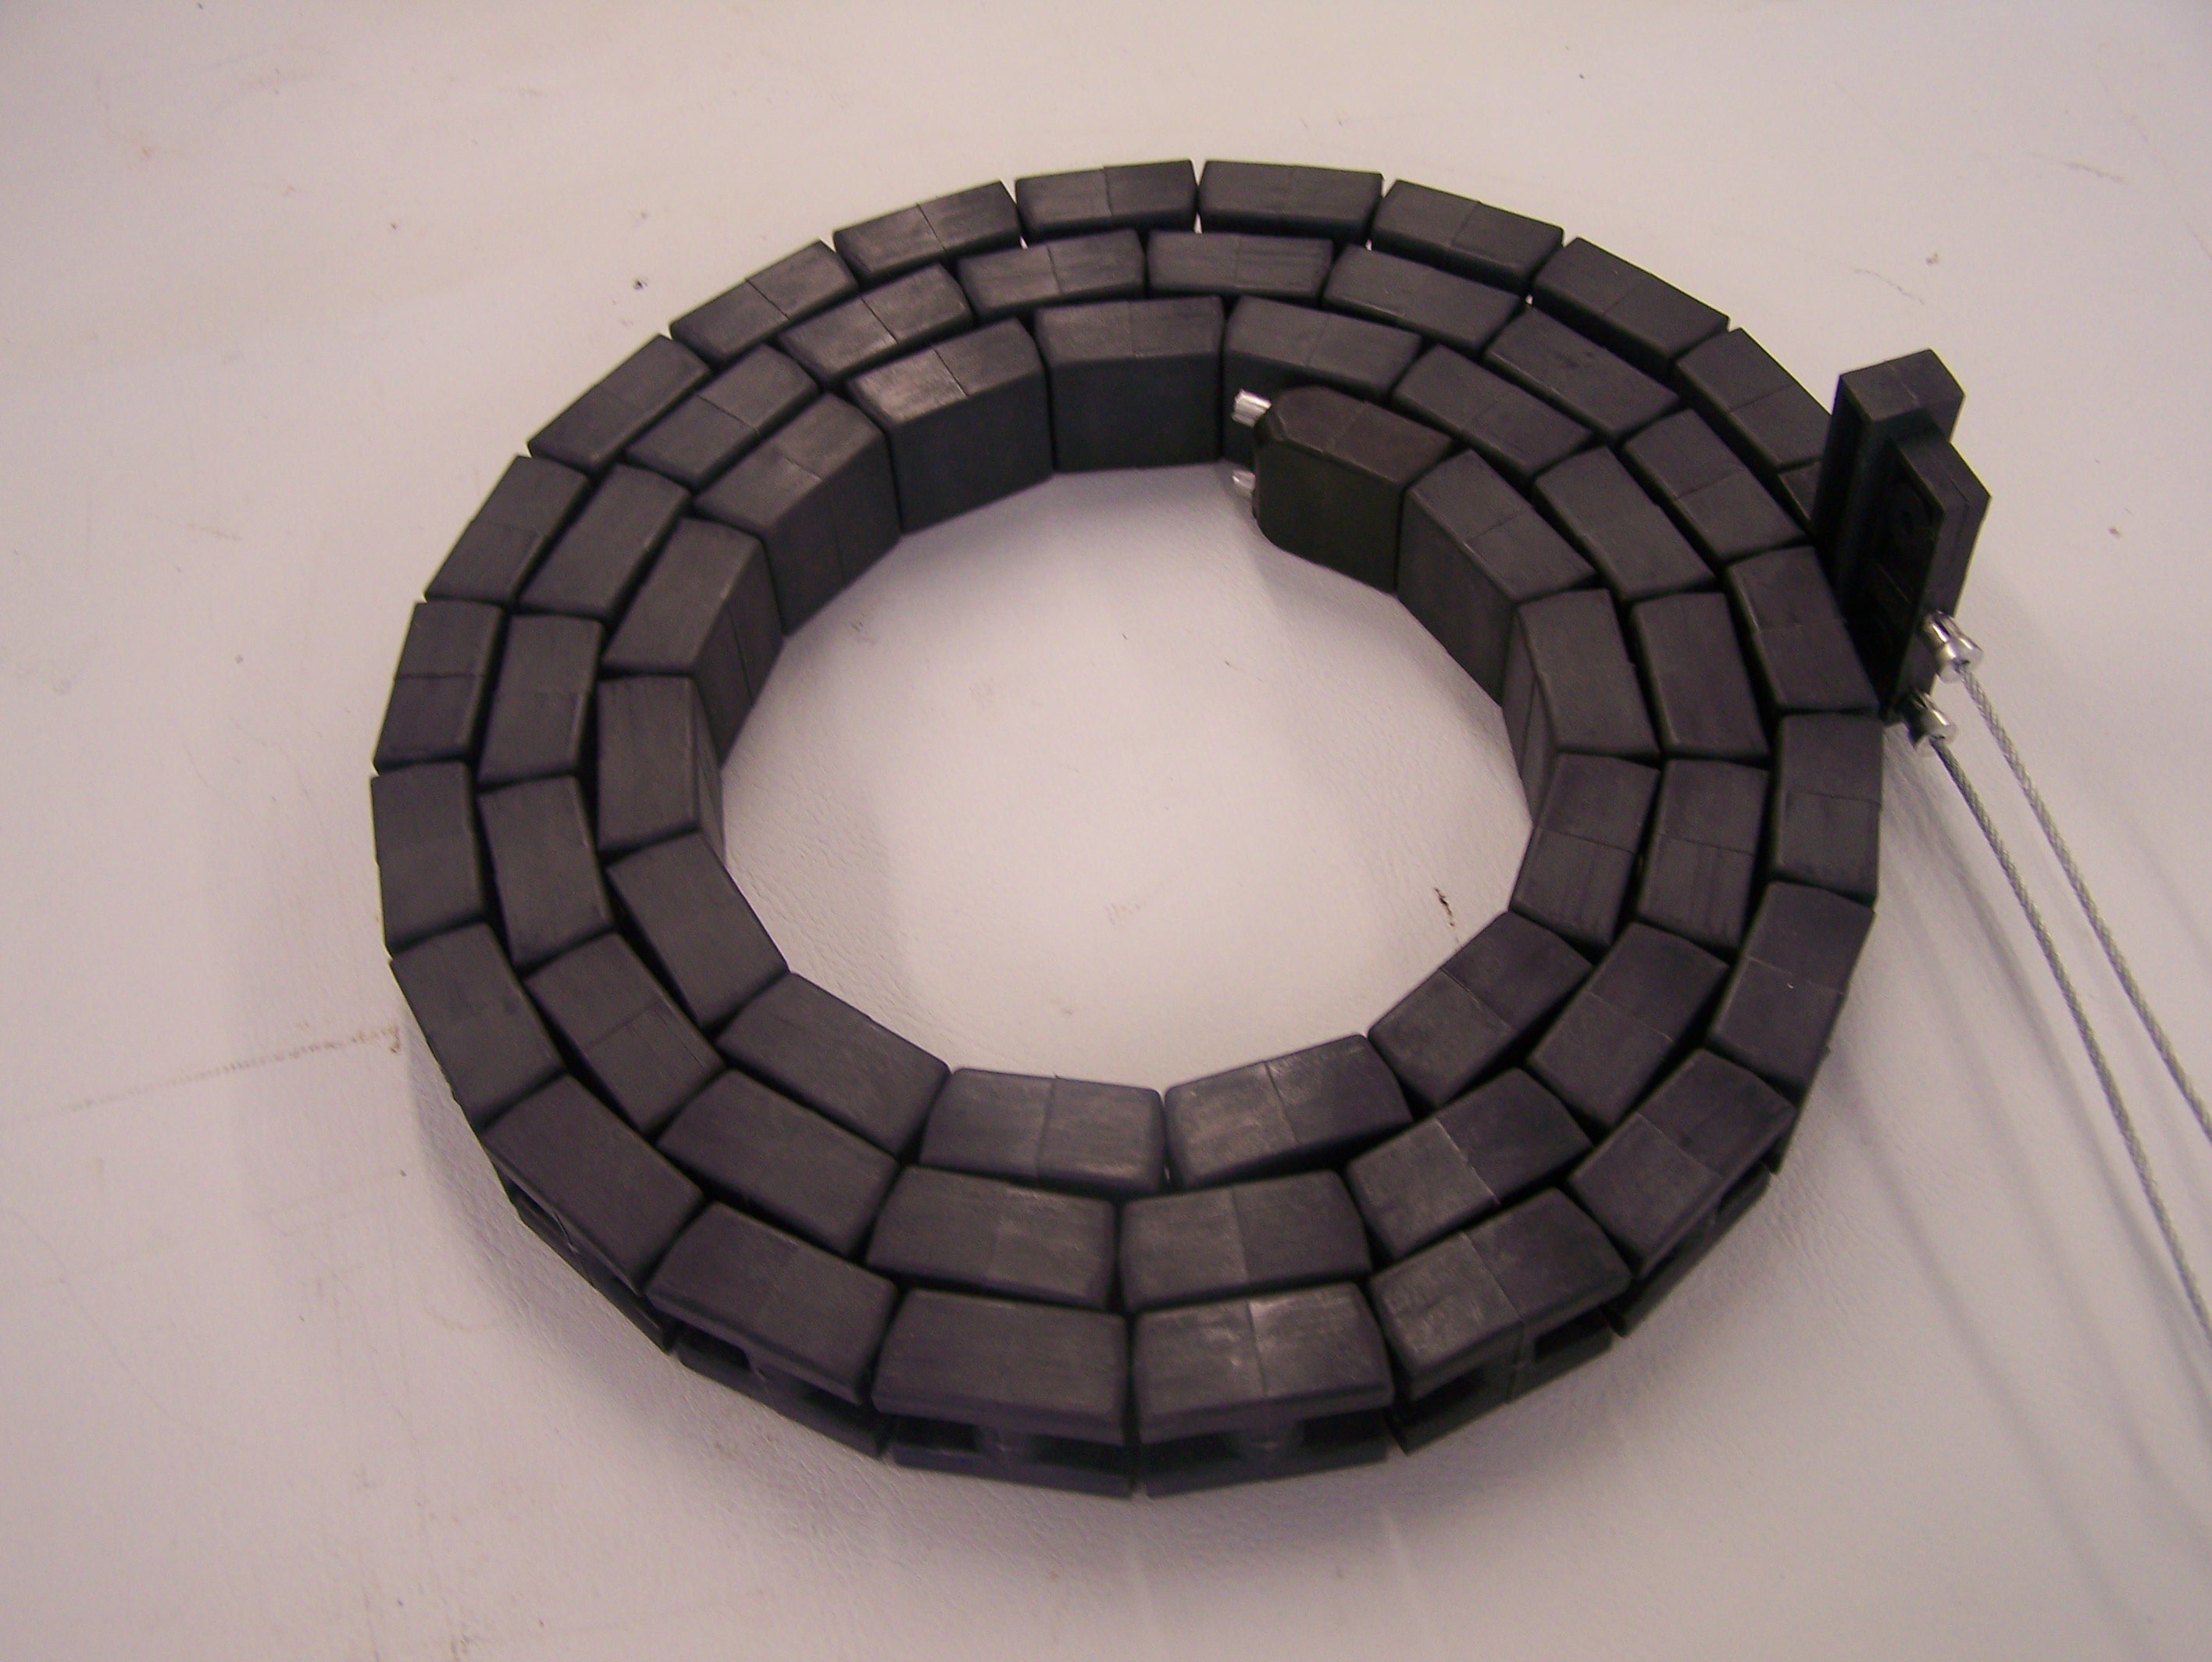 Apache Lifter Chain (Heavy black plastic blocks)